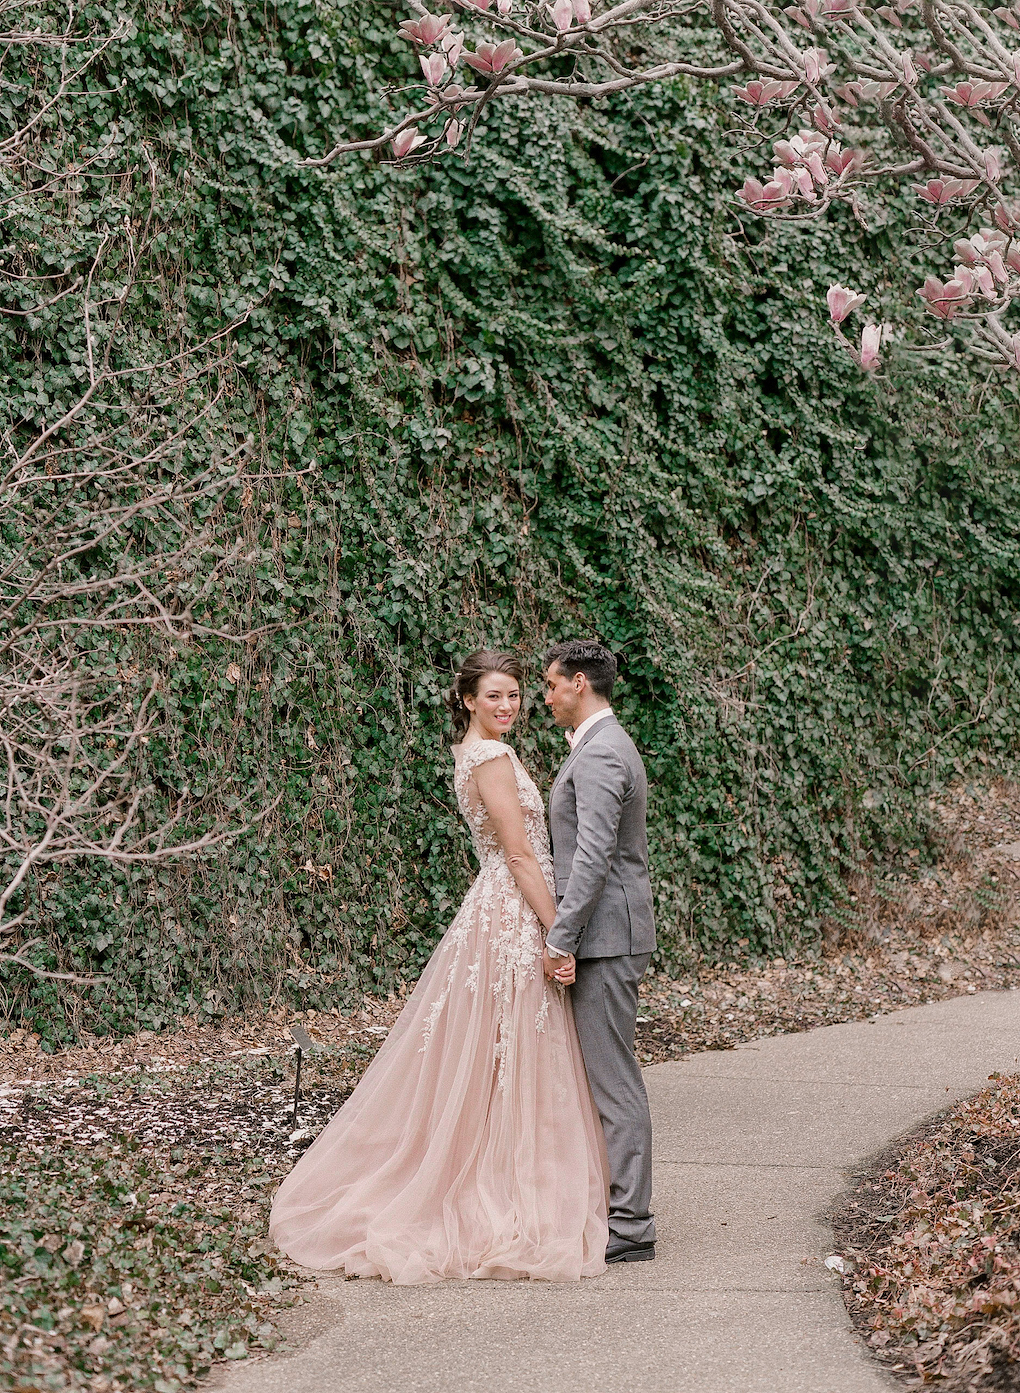 Romantic Garden wedding photos:Soft and Subtle Palettes of Spring Blossoms | Editorial Shoot at The Renaissance Pittsburgh by Exhale Events. See more inspiration at exhale-events.com!